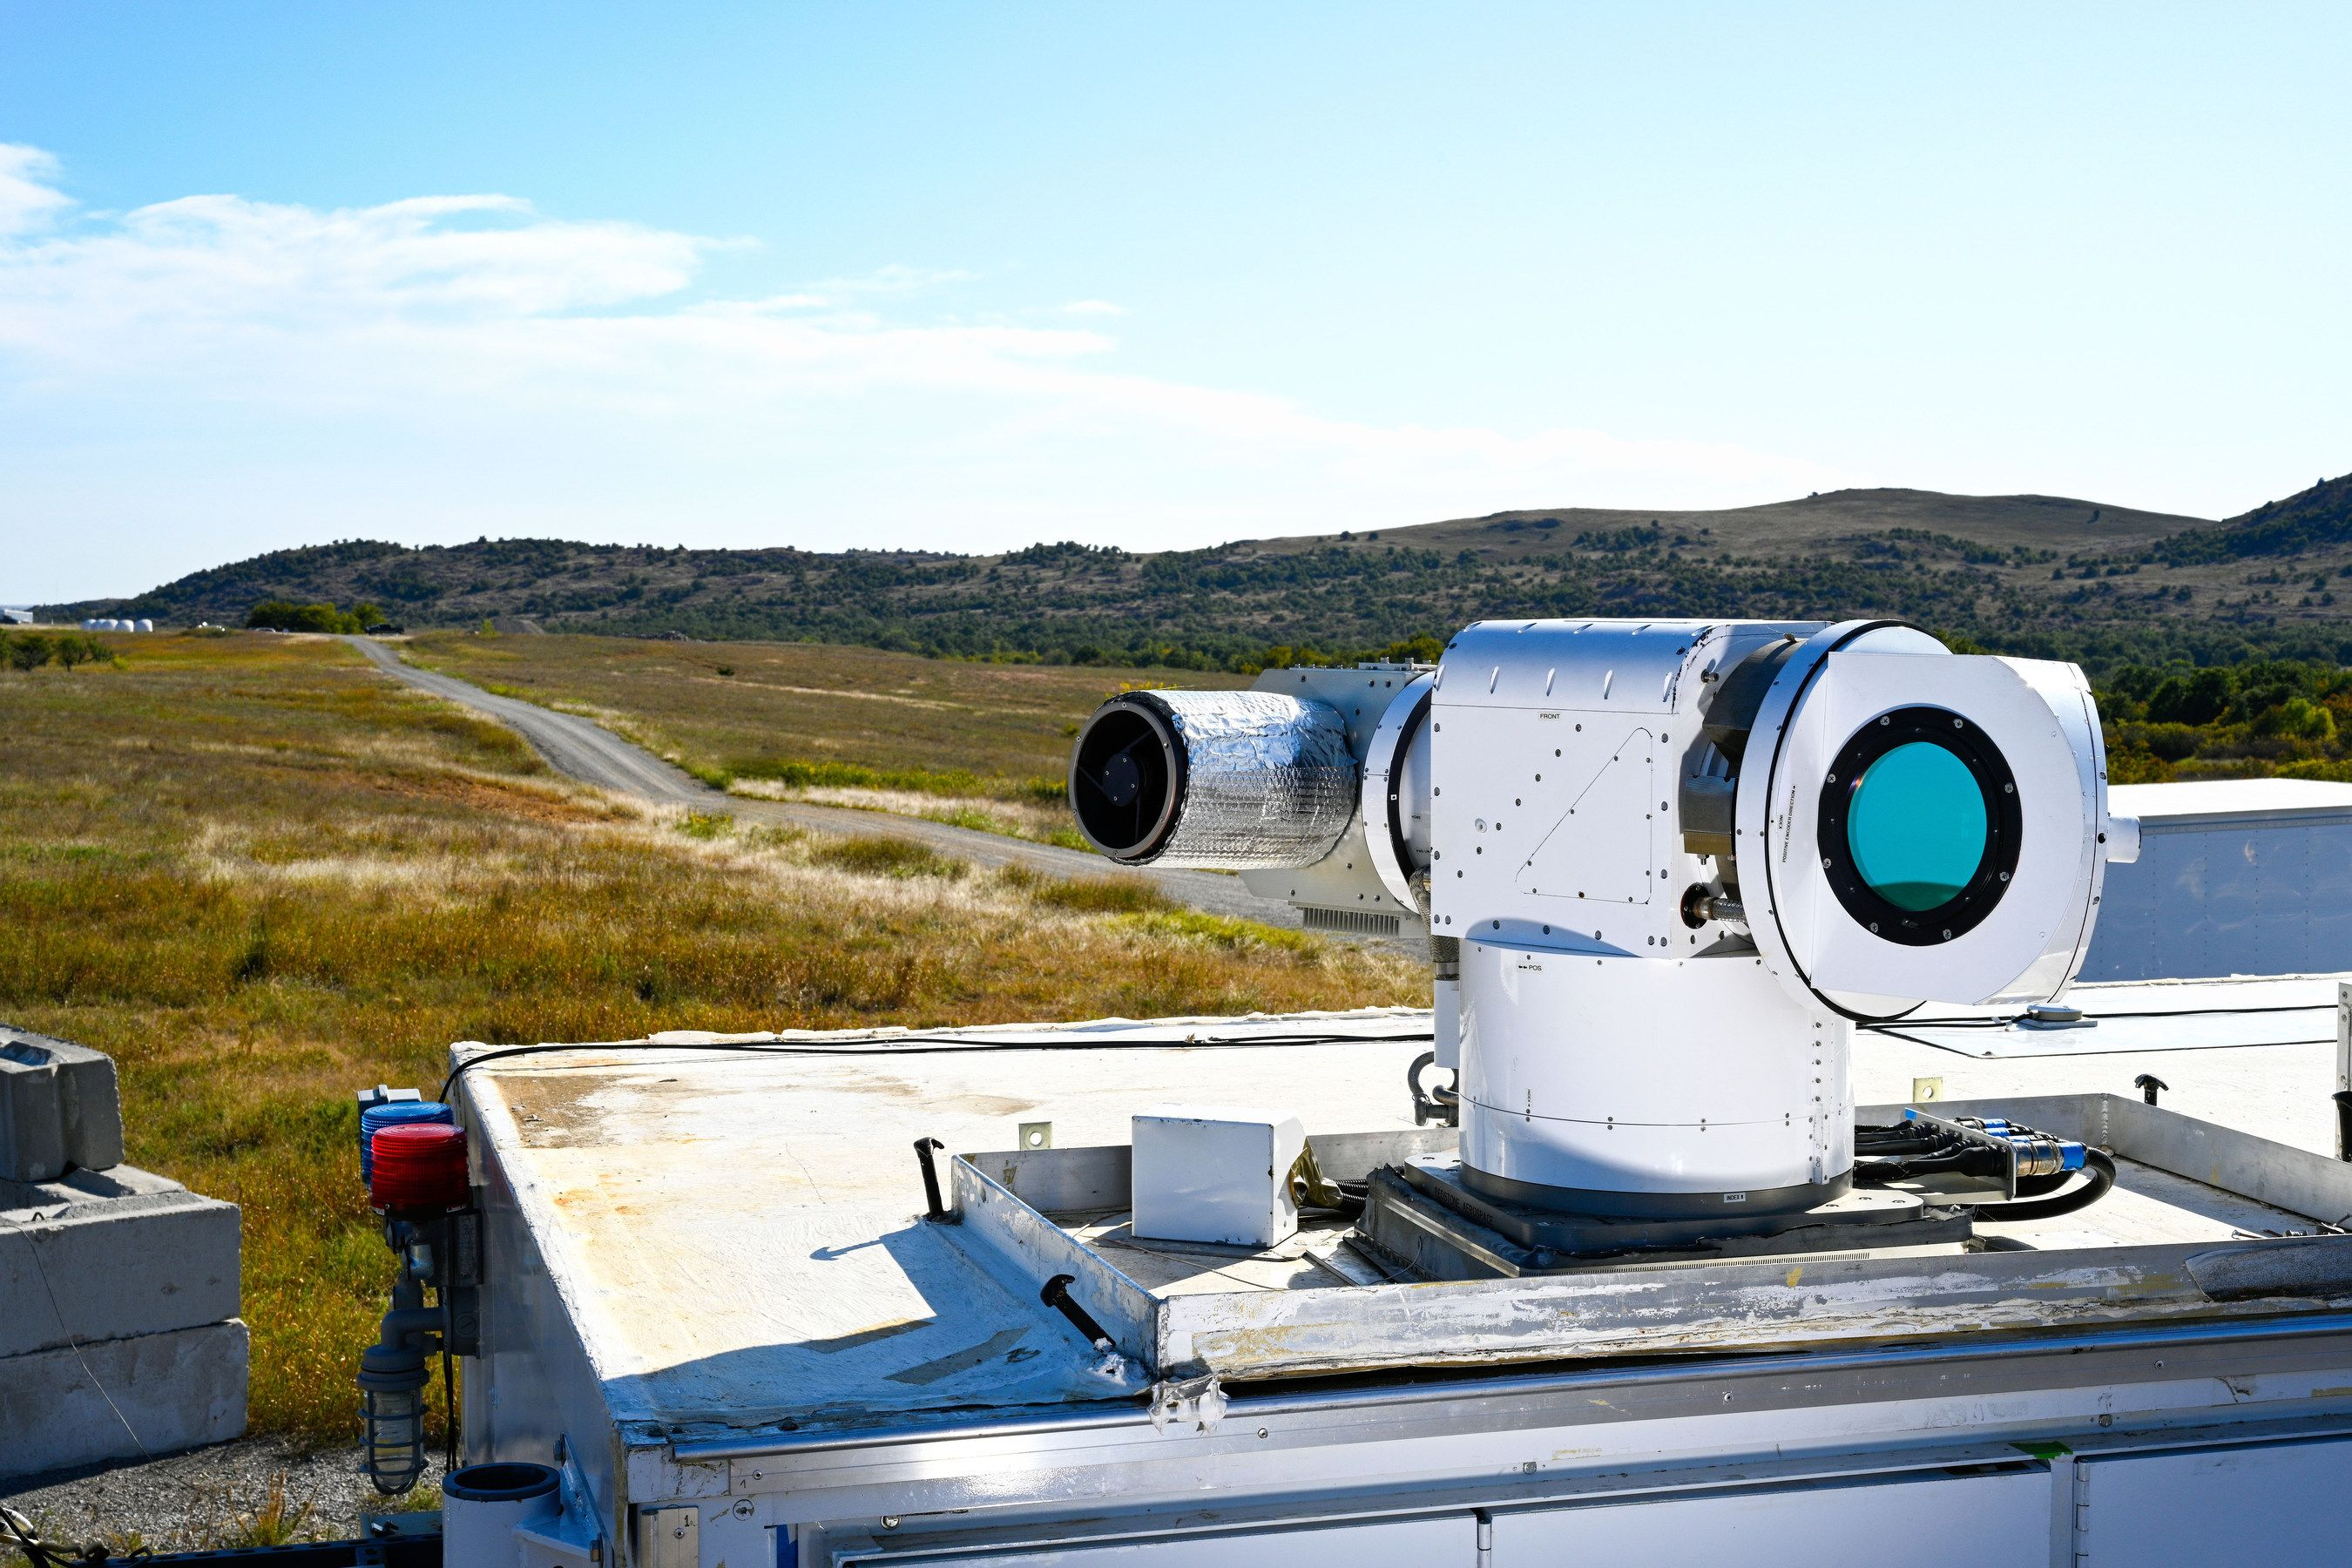 Air Force Downs Several Drones With New ATHENA Laser Weapon System